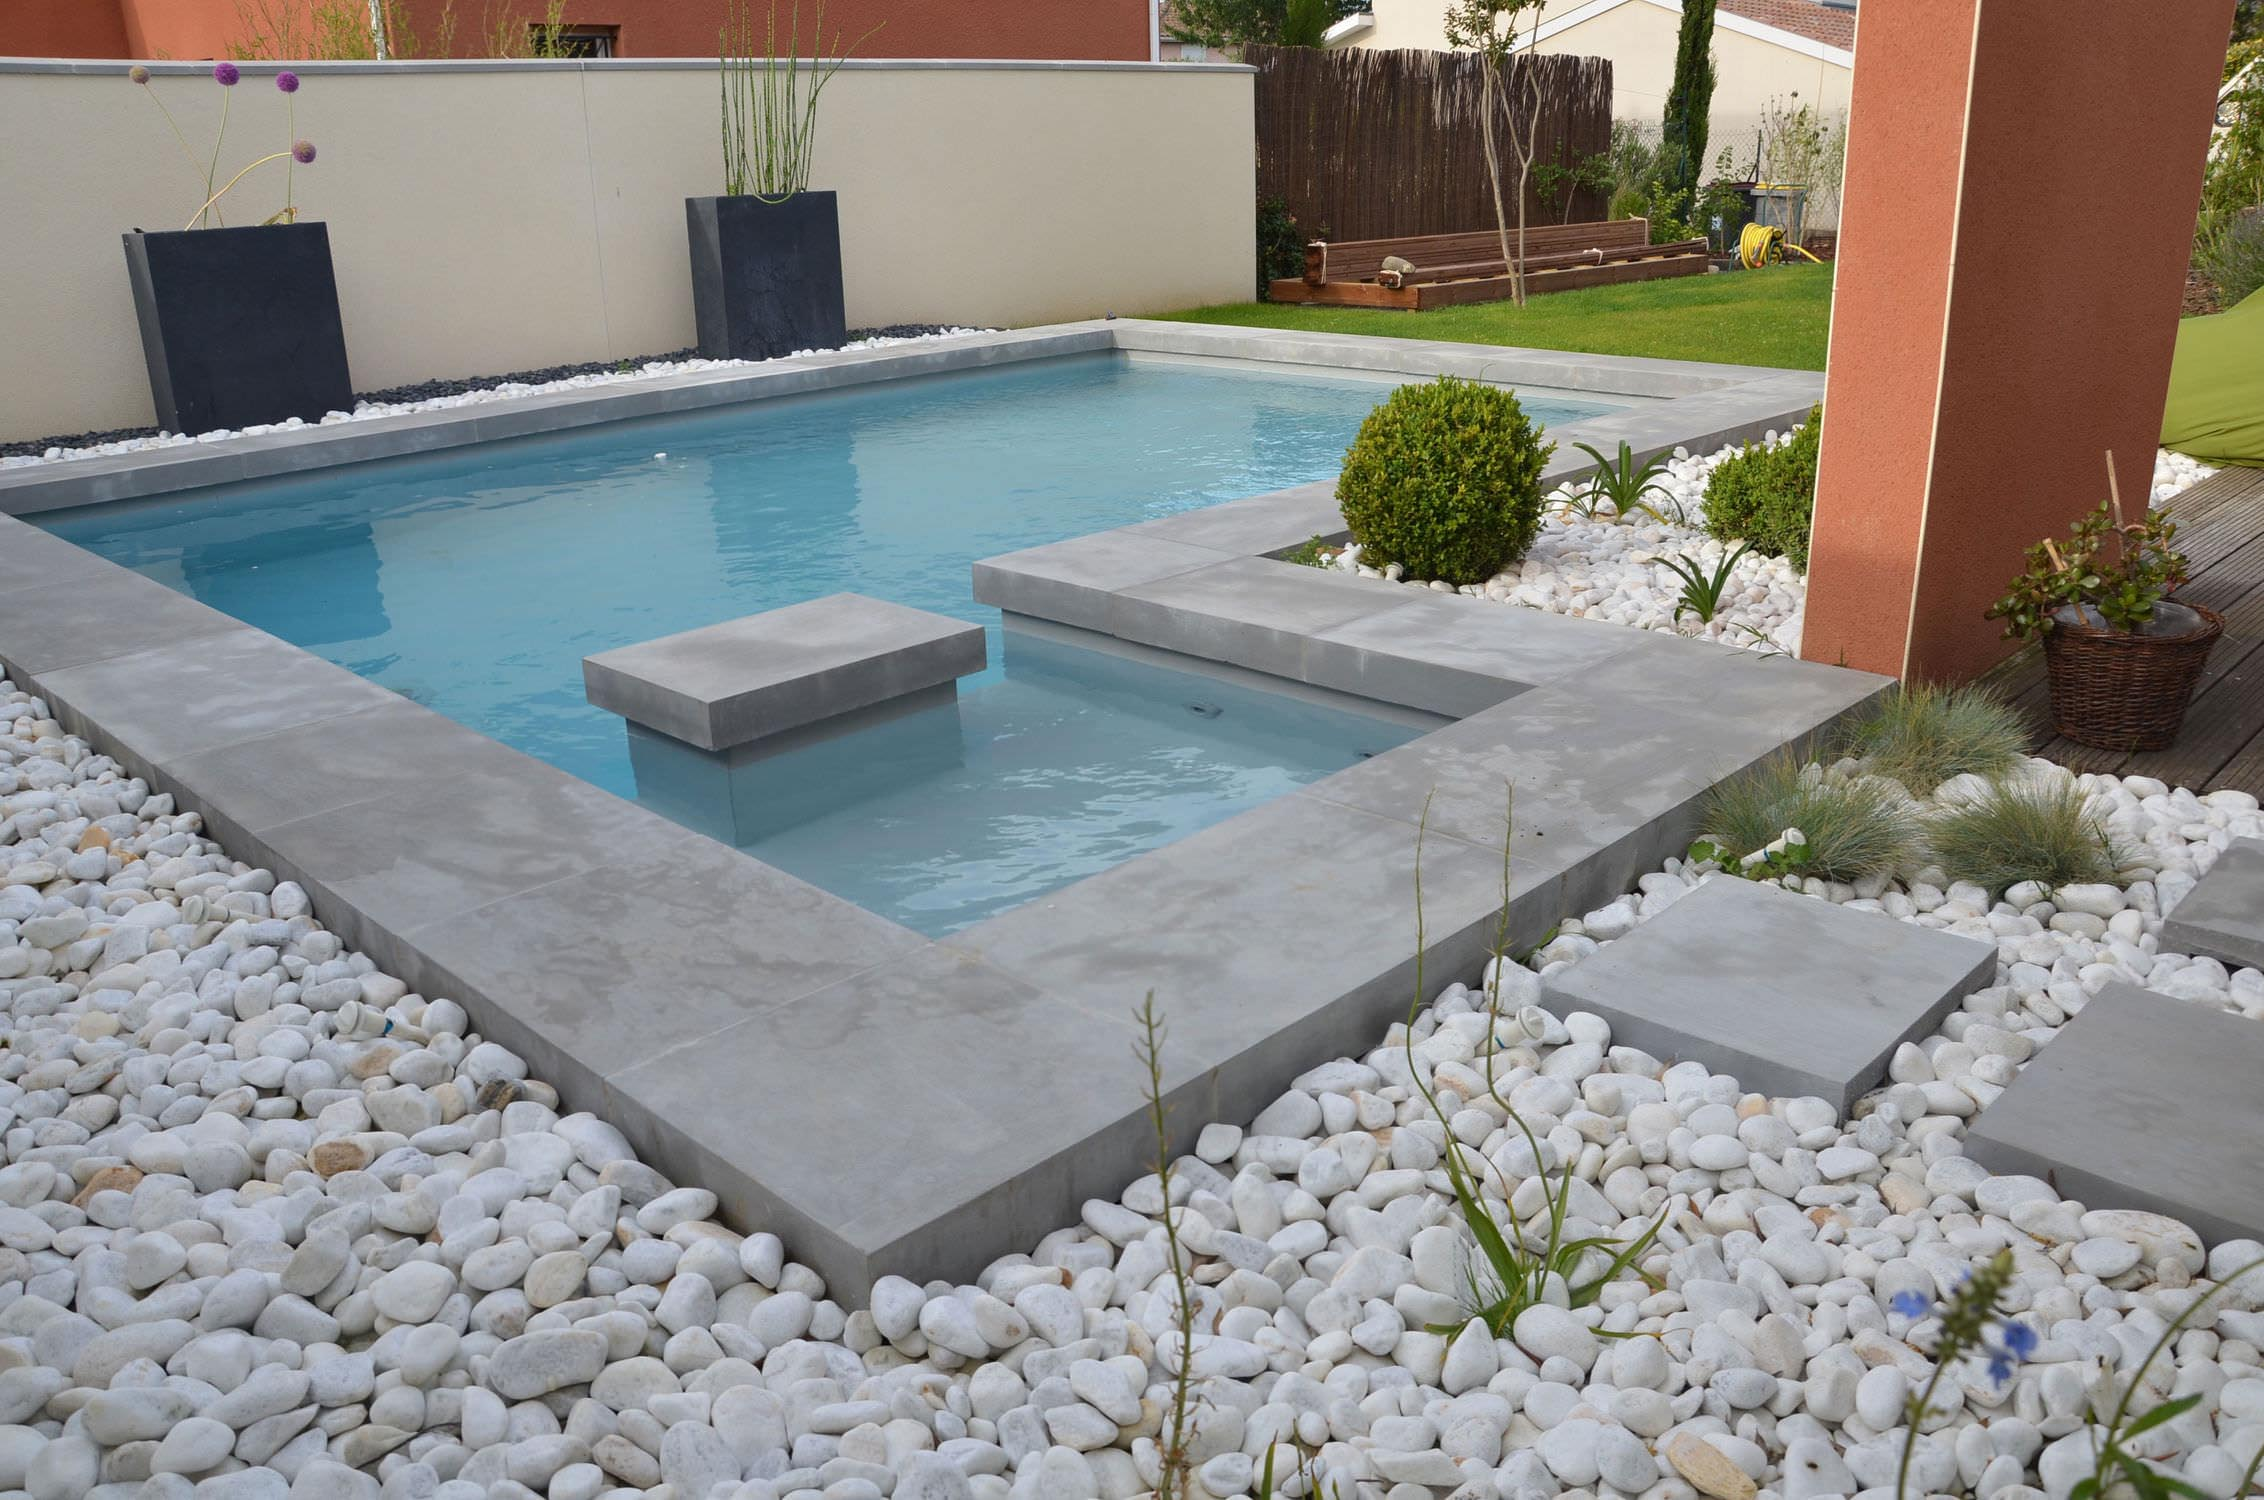 Concrete swimming pool coping backyard design ideas for In ground pool coping ideas